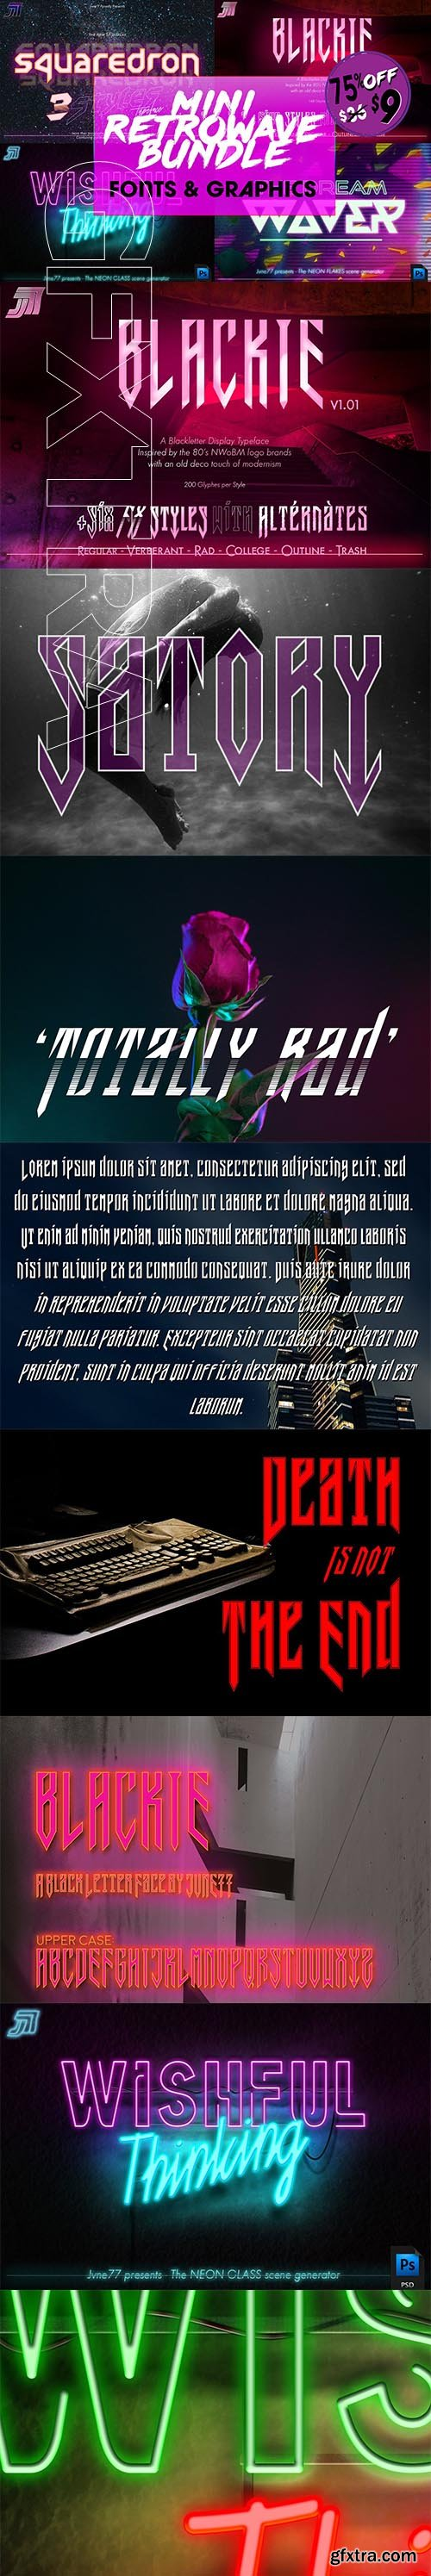 CreativeMarket - Retrowave Bundle of Fonts & Graphics 3709080